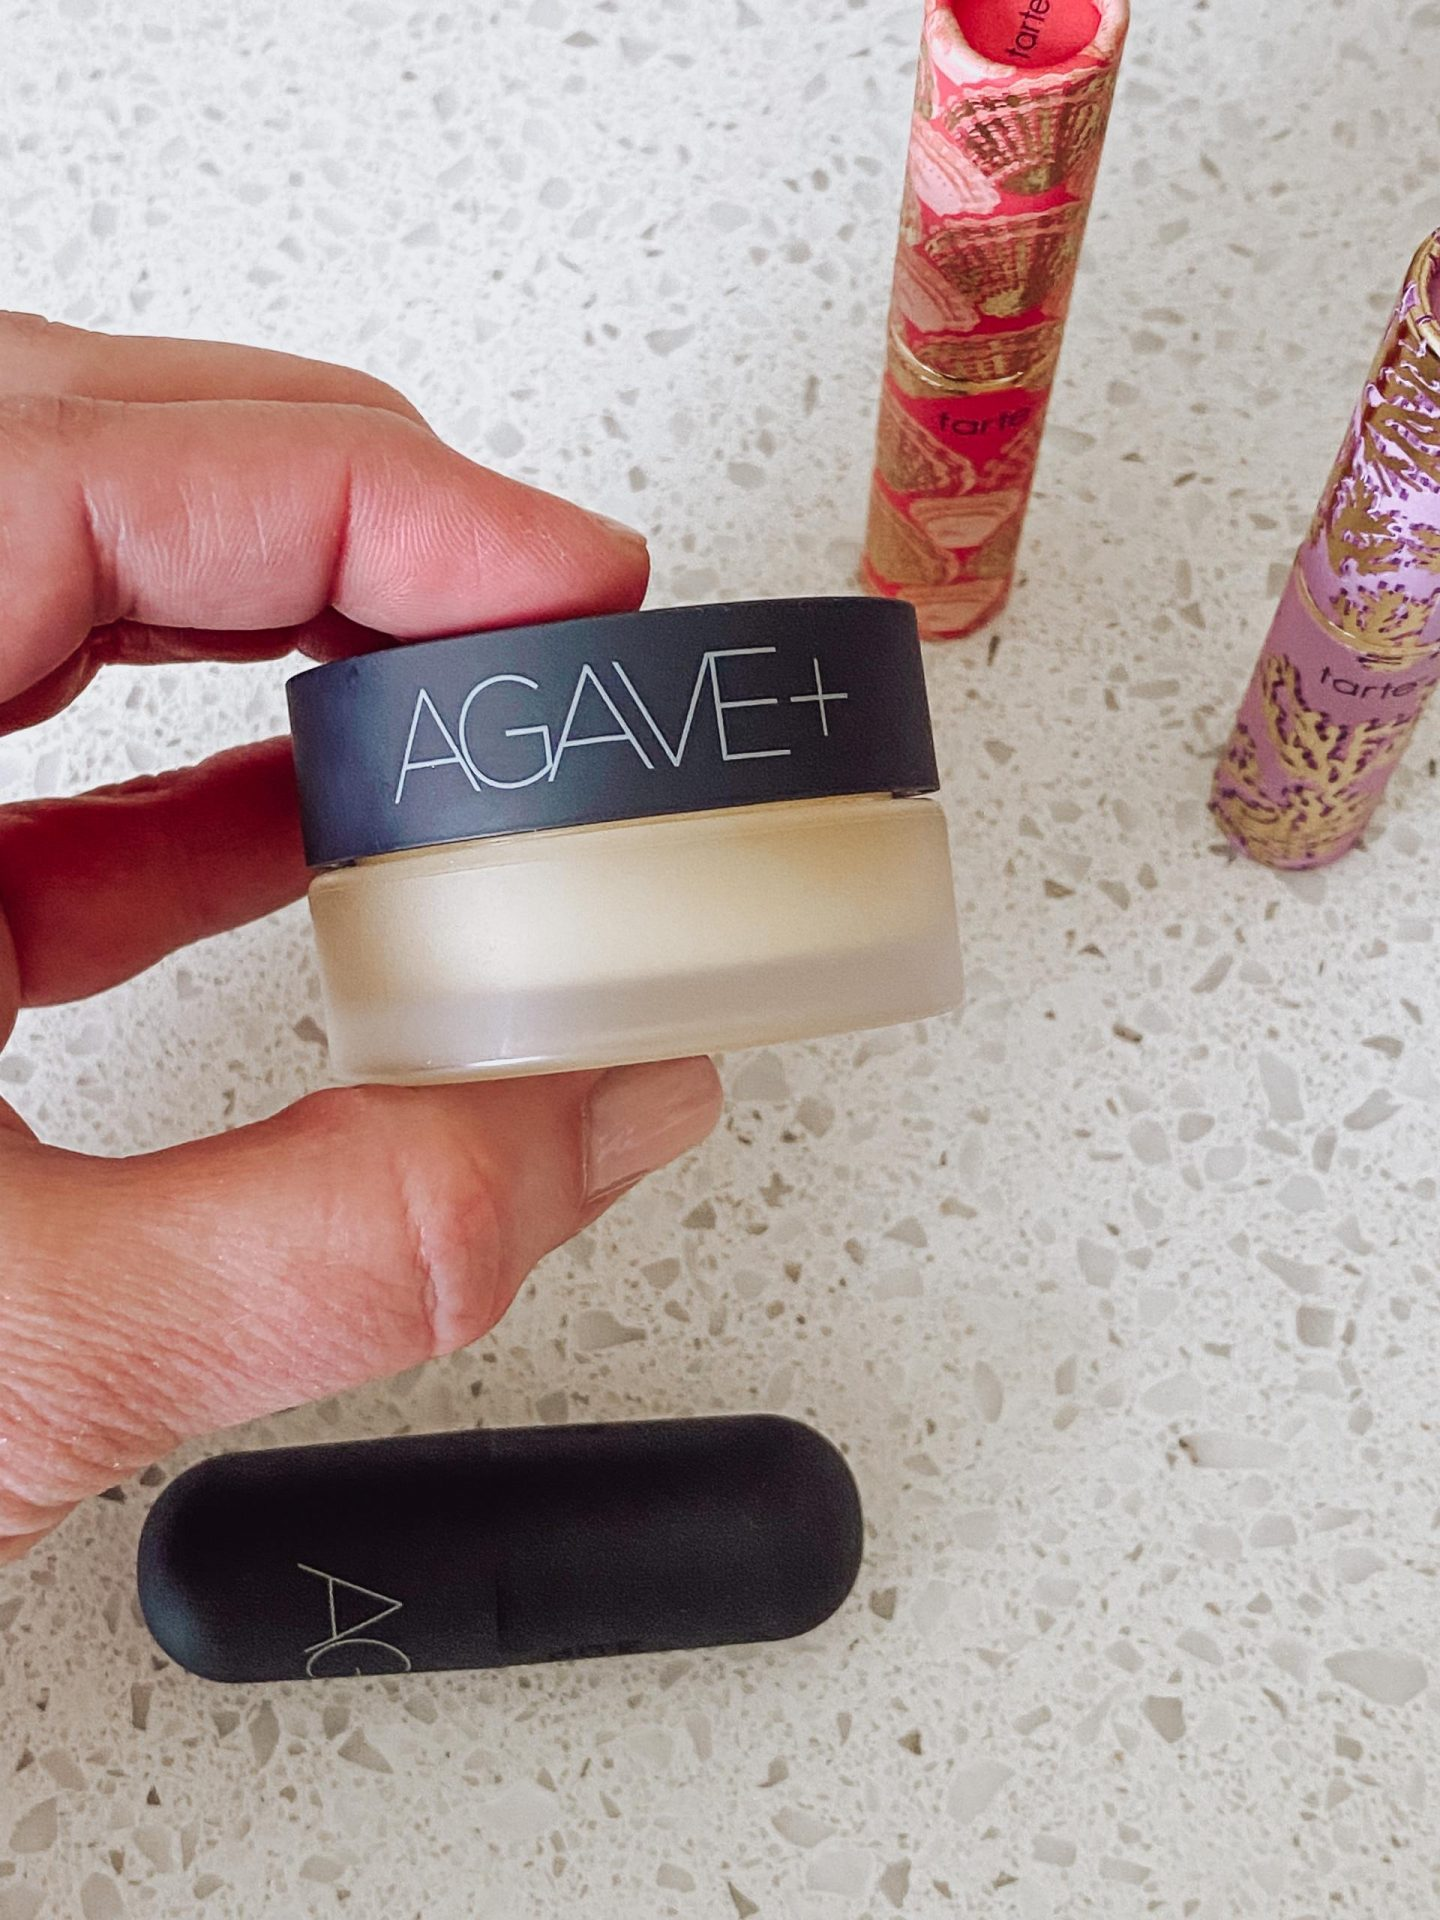 NC blogger Rebecca Lately is sharing her favorite hydrating lip products. See her faves from Tarte, Bite Beauty and Versed.